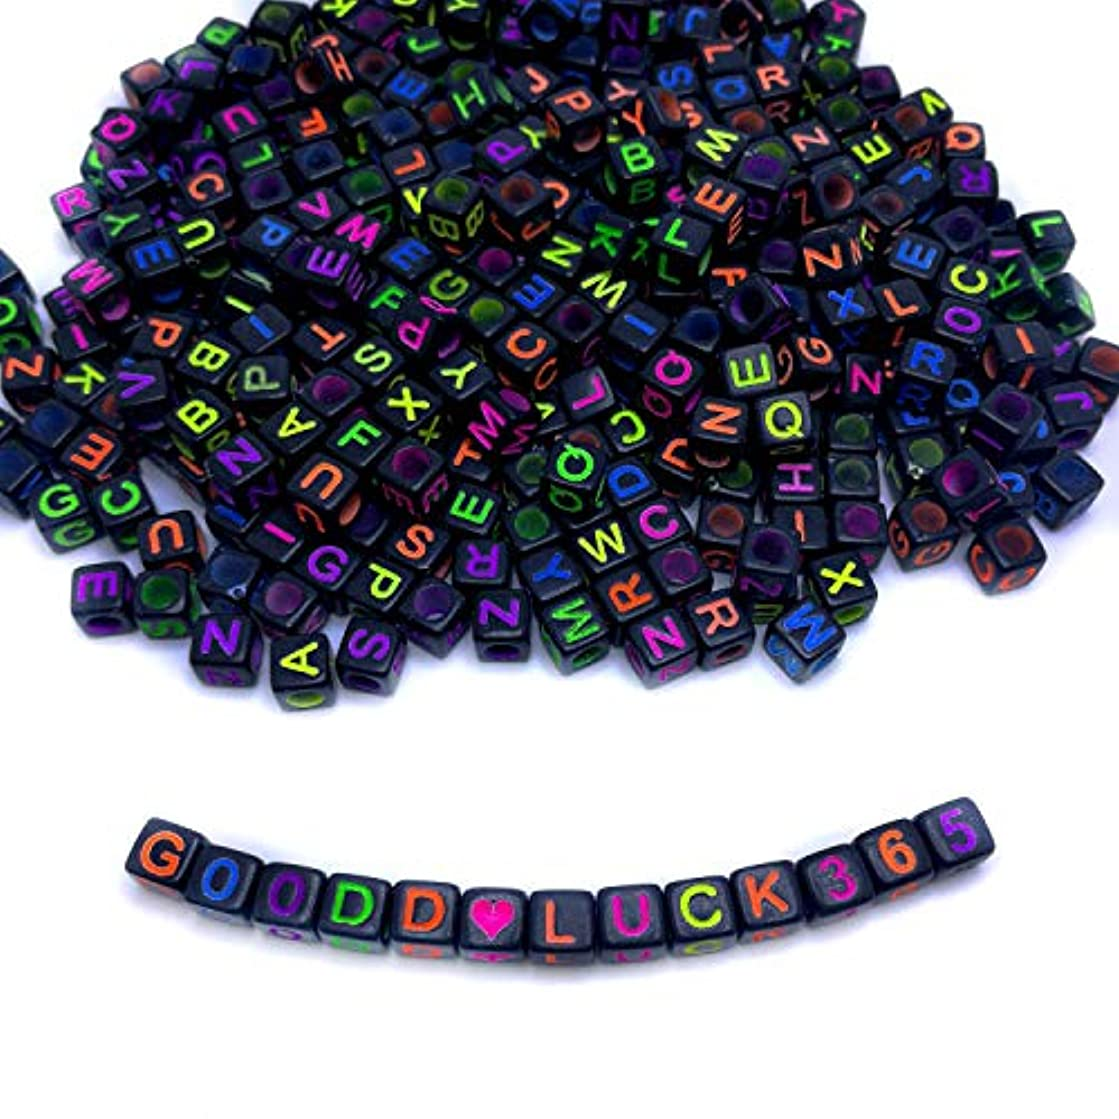 Amaney 800pcs 6×6mm Black Cube Acrylic Alphabet Letter Beads A-Z Include 100pcs Heart and Number Beads for jewelry making Bracelets Necklaces Key Chains and Kids Jewelry Each Letter Included